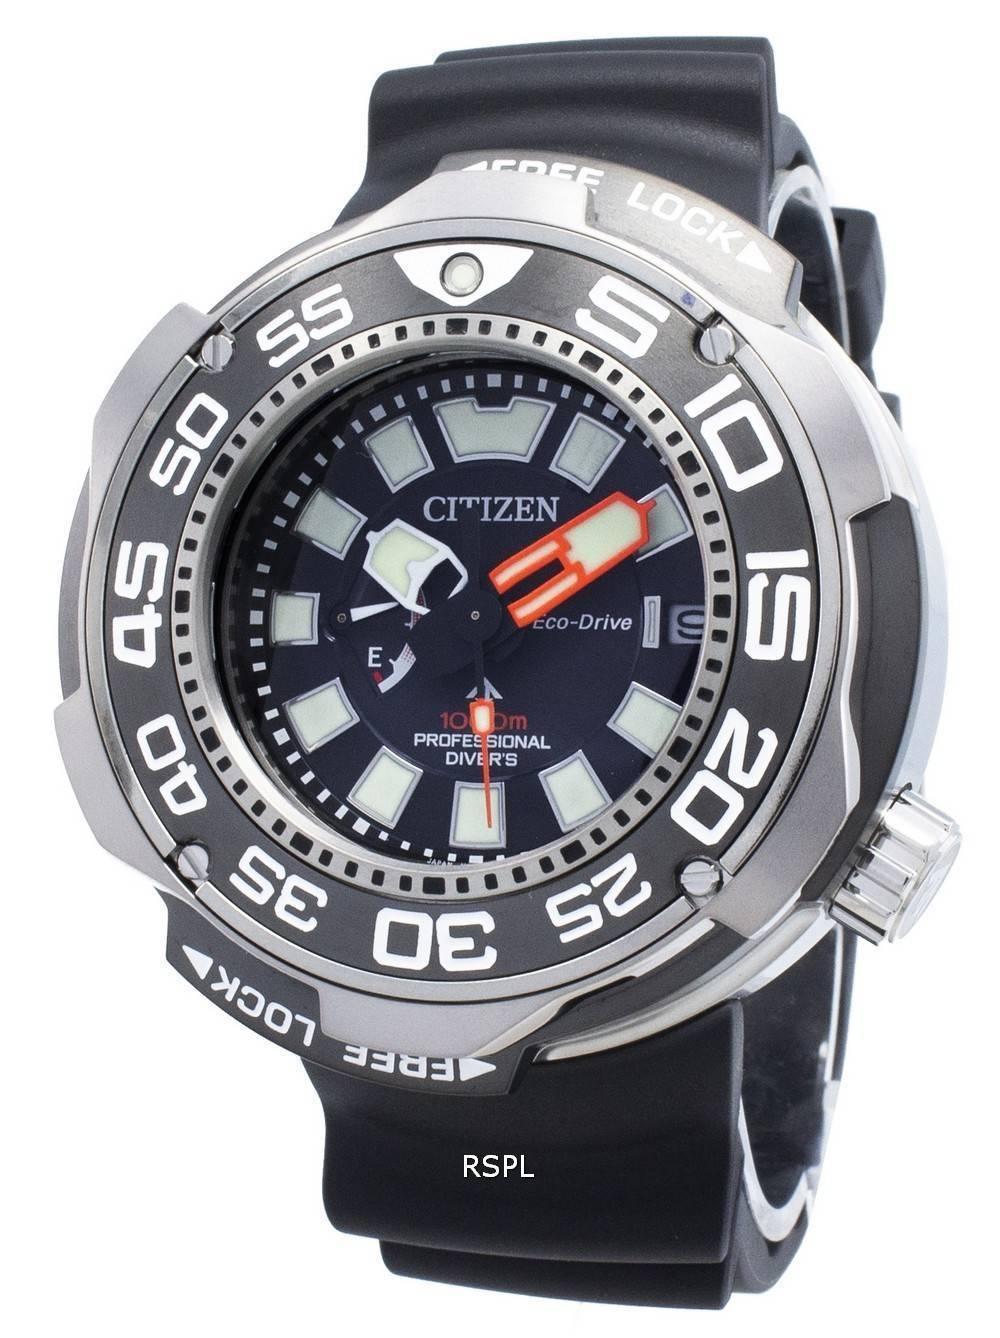 Citizen Promaster Diver's BN7020-09E Eco-Drive 1000M Men's Watch